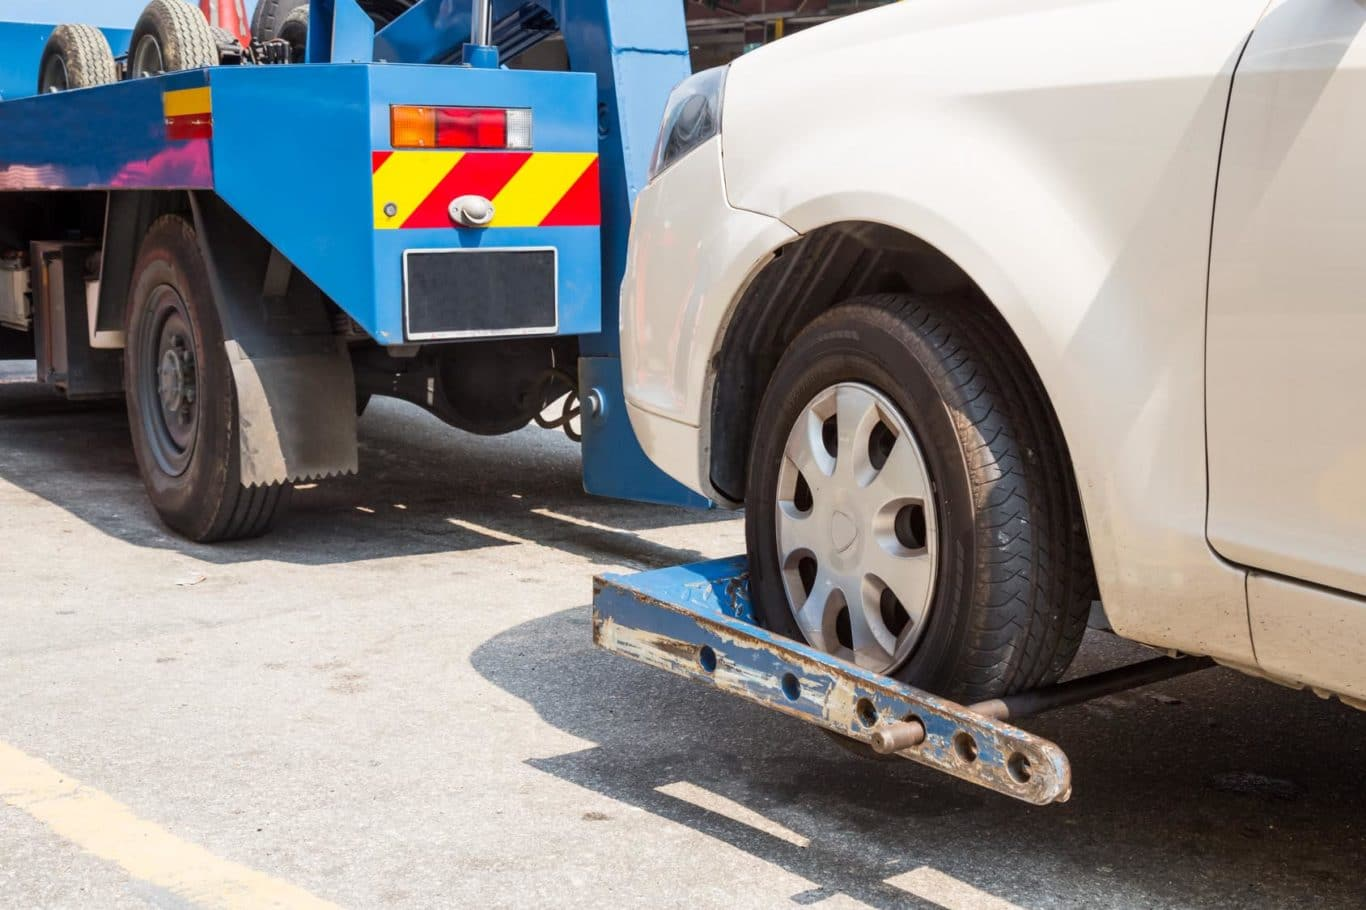 Ashtown expert Car Towing services